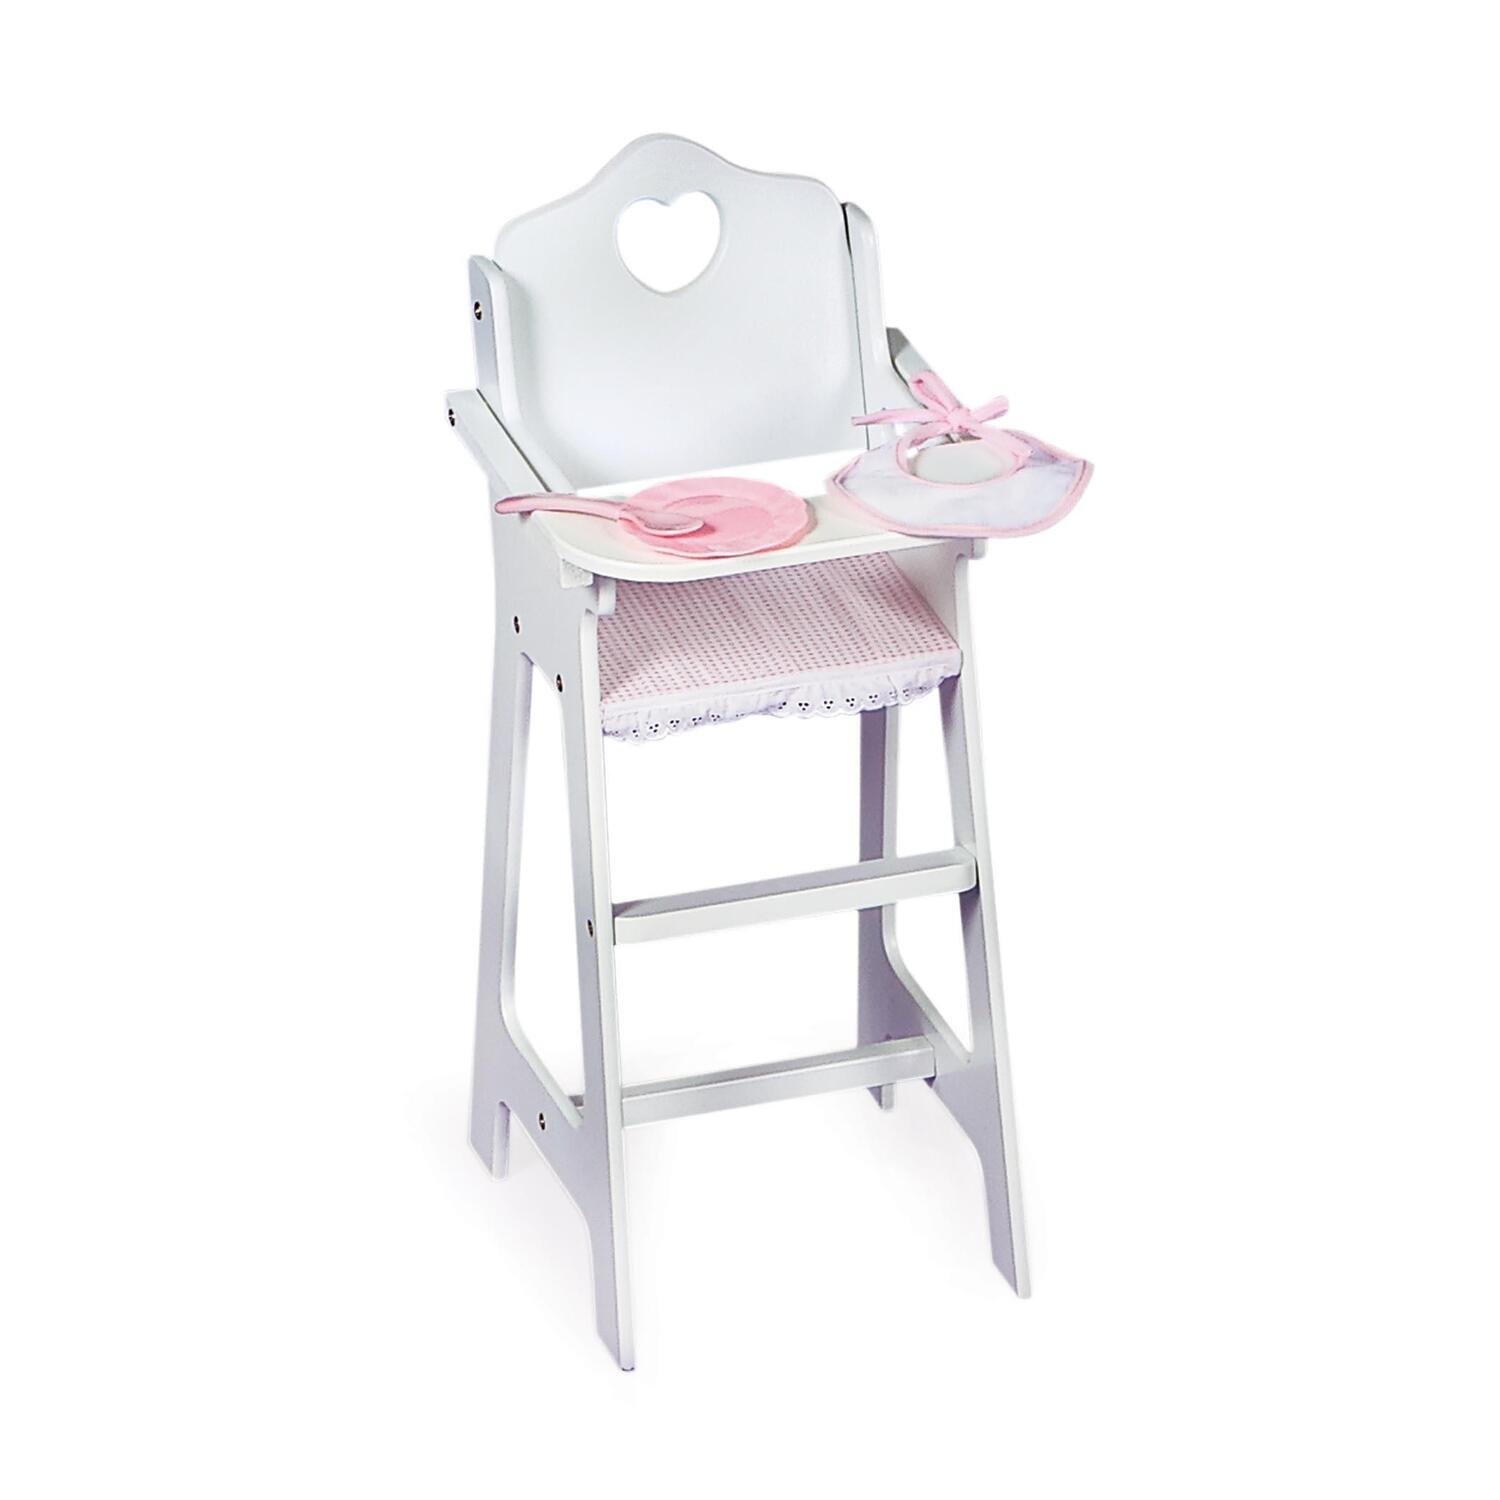 first step high chair glider cushions royal pavilion doll crib furniture set from 130 99 to